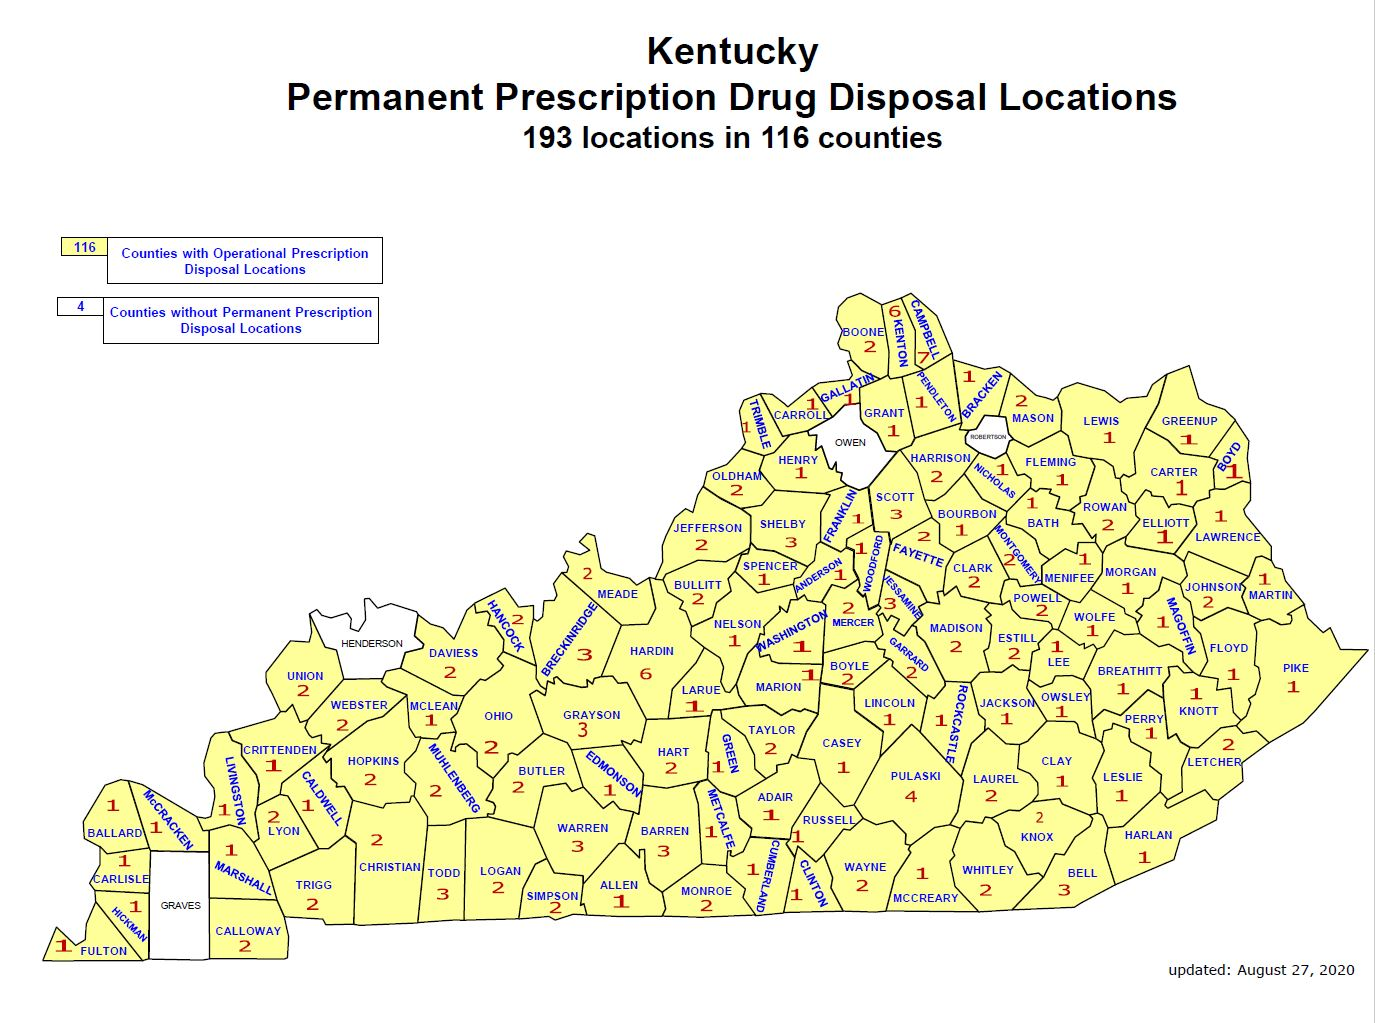 Kentucky Permanent Prescription Drug Disposal Locations - 193 locations in 116 counties. Map of Kentucky.